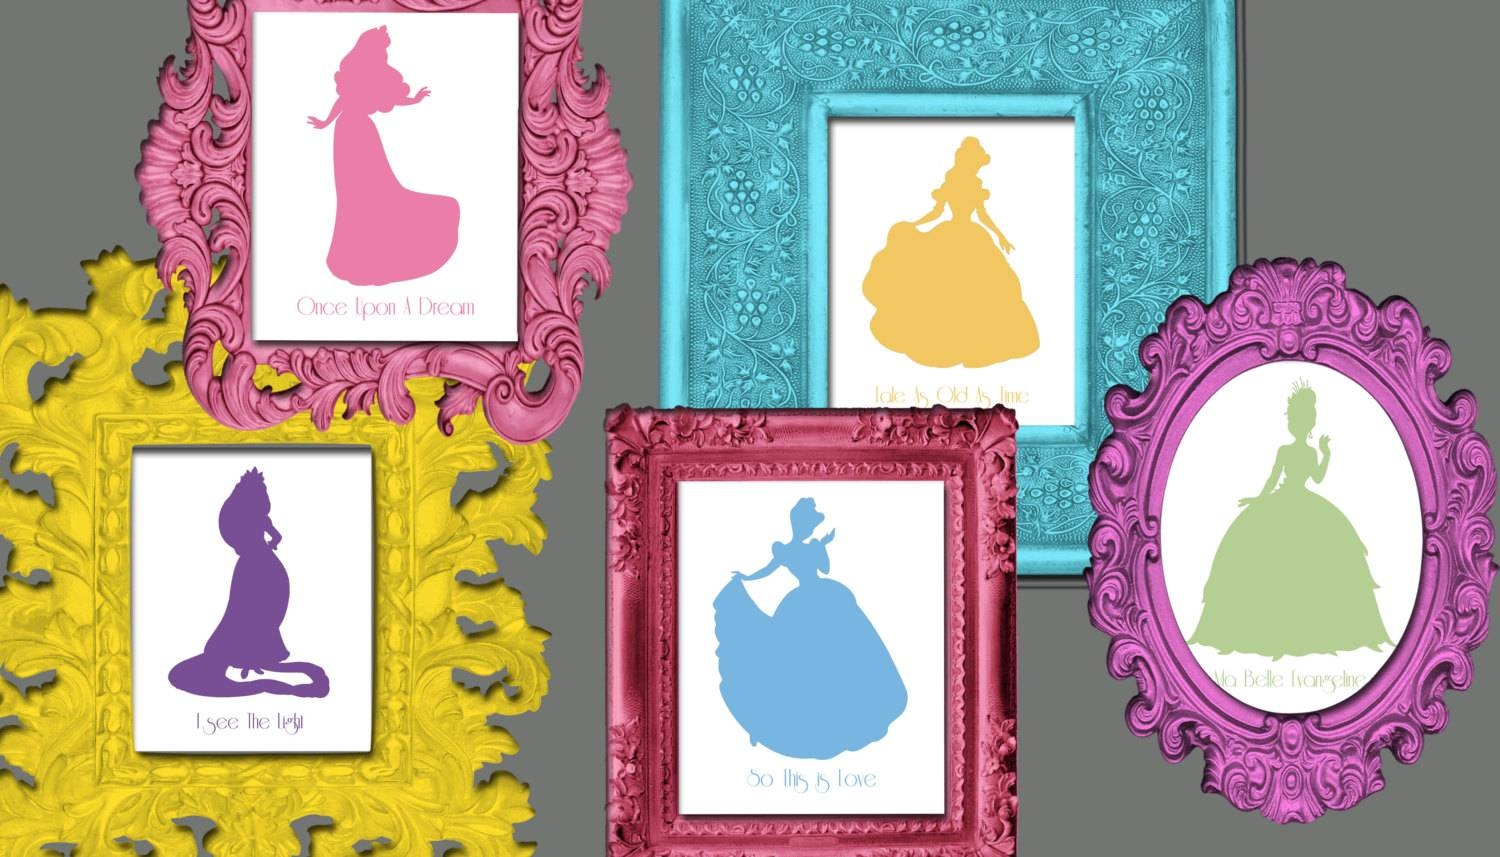 Disney Princess Silhouette Wall Art 12 8x10 Prints With Song Throughout 2017 Disney Princess Wall Art (View 7 of 20)